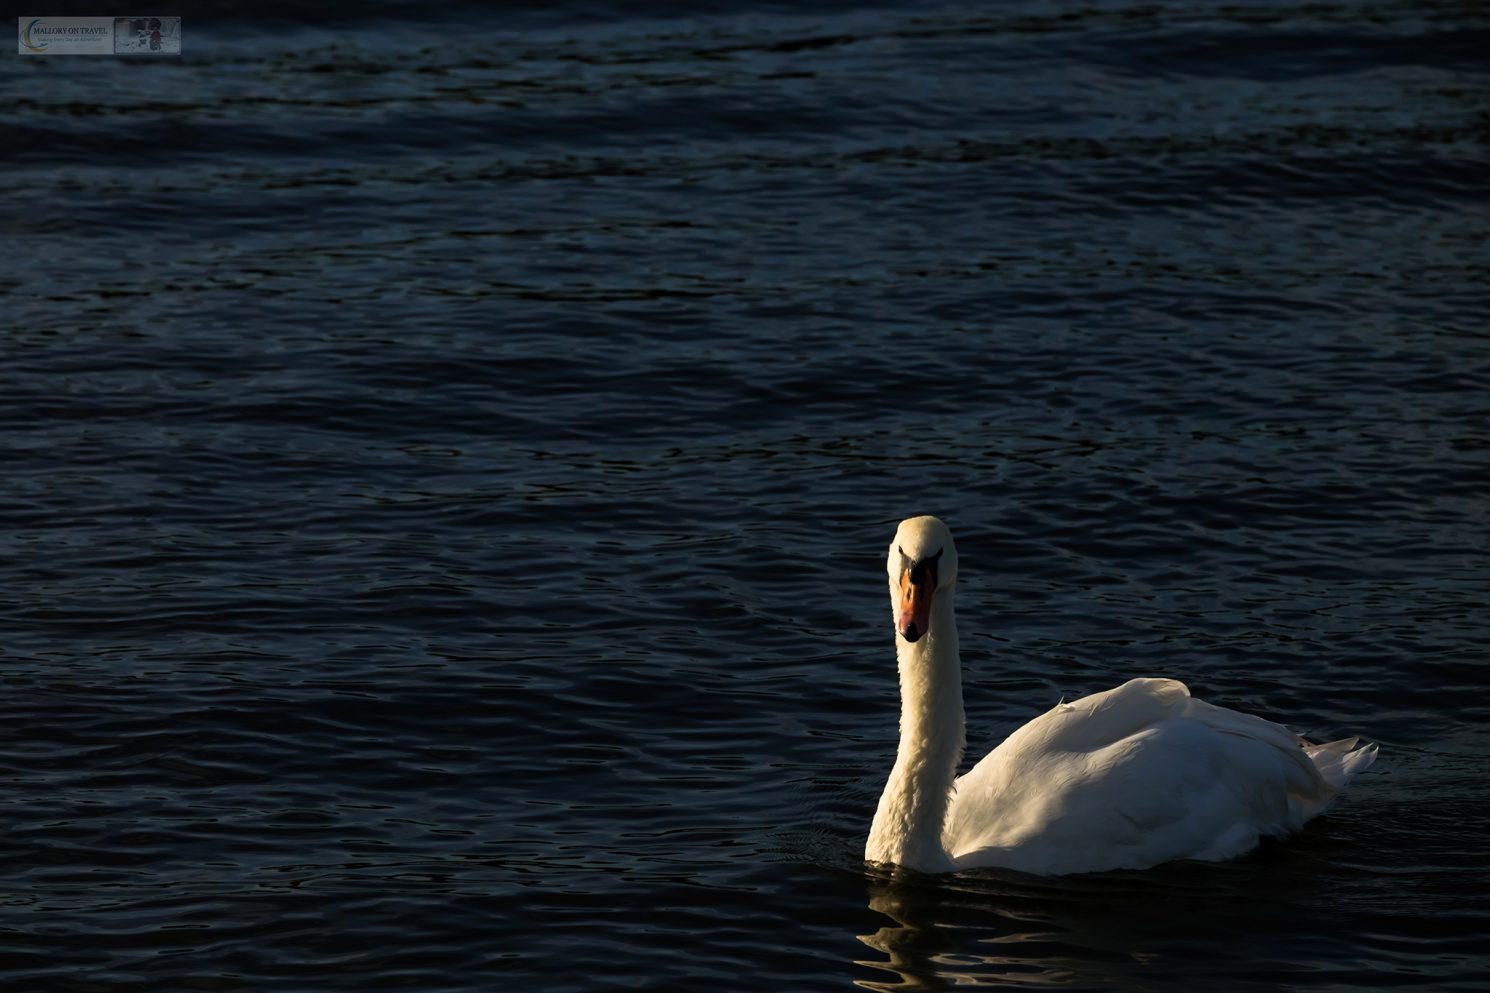 A swan on the Norfolk Broads National Park in the East Anglia county of Norfolk, England in the United Kingdom on Mallory on Travel adventure travel, photography, travel iain-mallory_norfolk-012